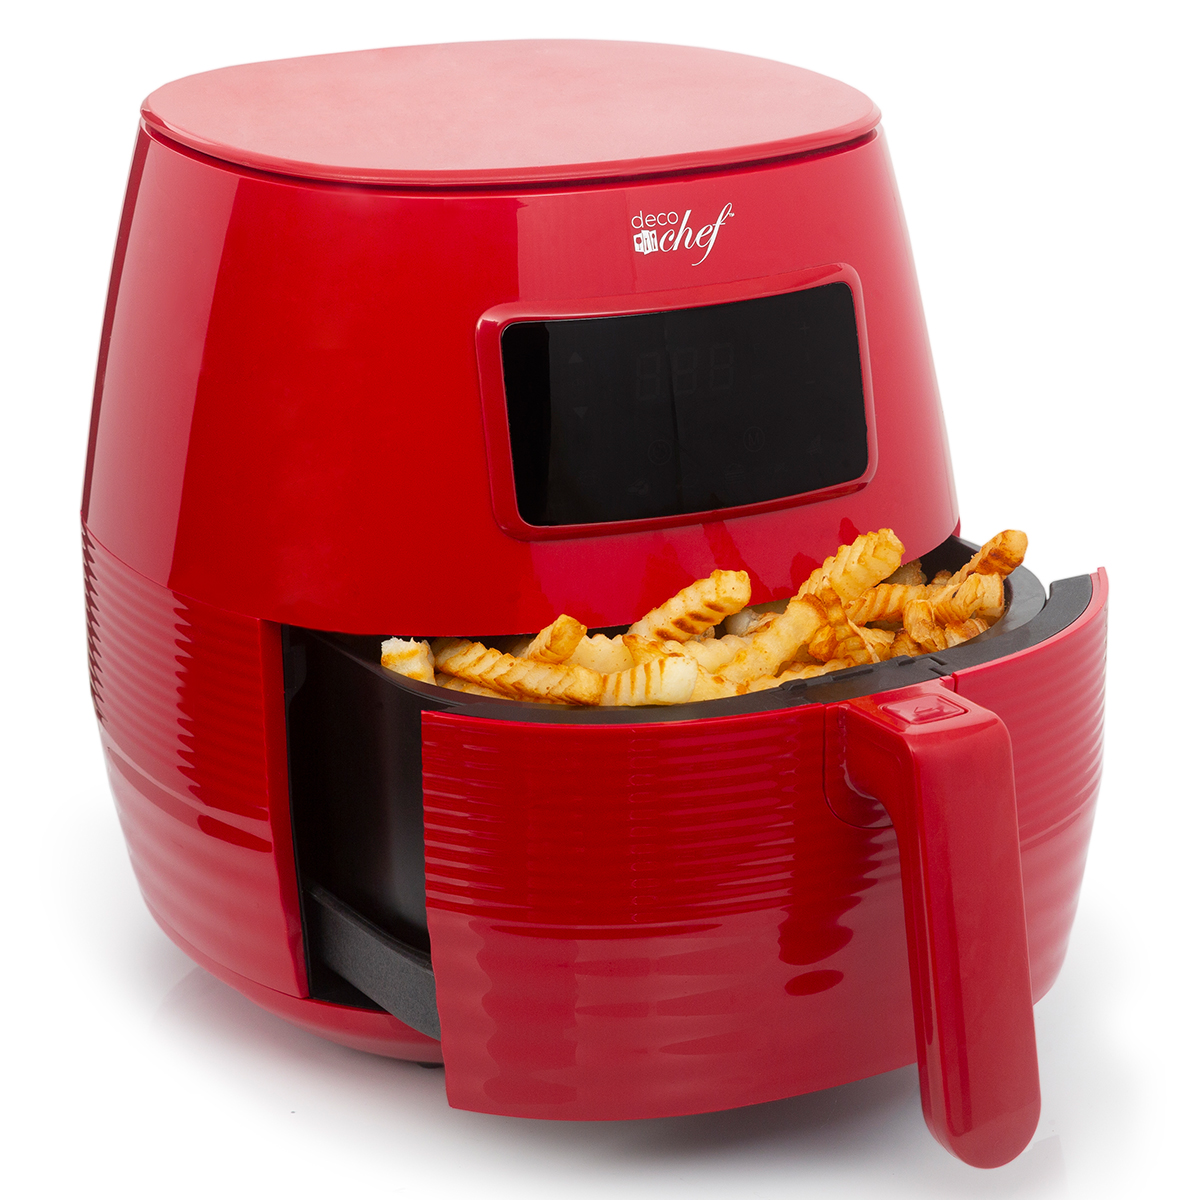 Deco-Chef-5-8QT-1400W-Digital-Electric-No-Oil-Air-Fryer-6-Cooking-Presets-Timer thumbnail 34